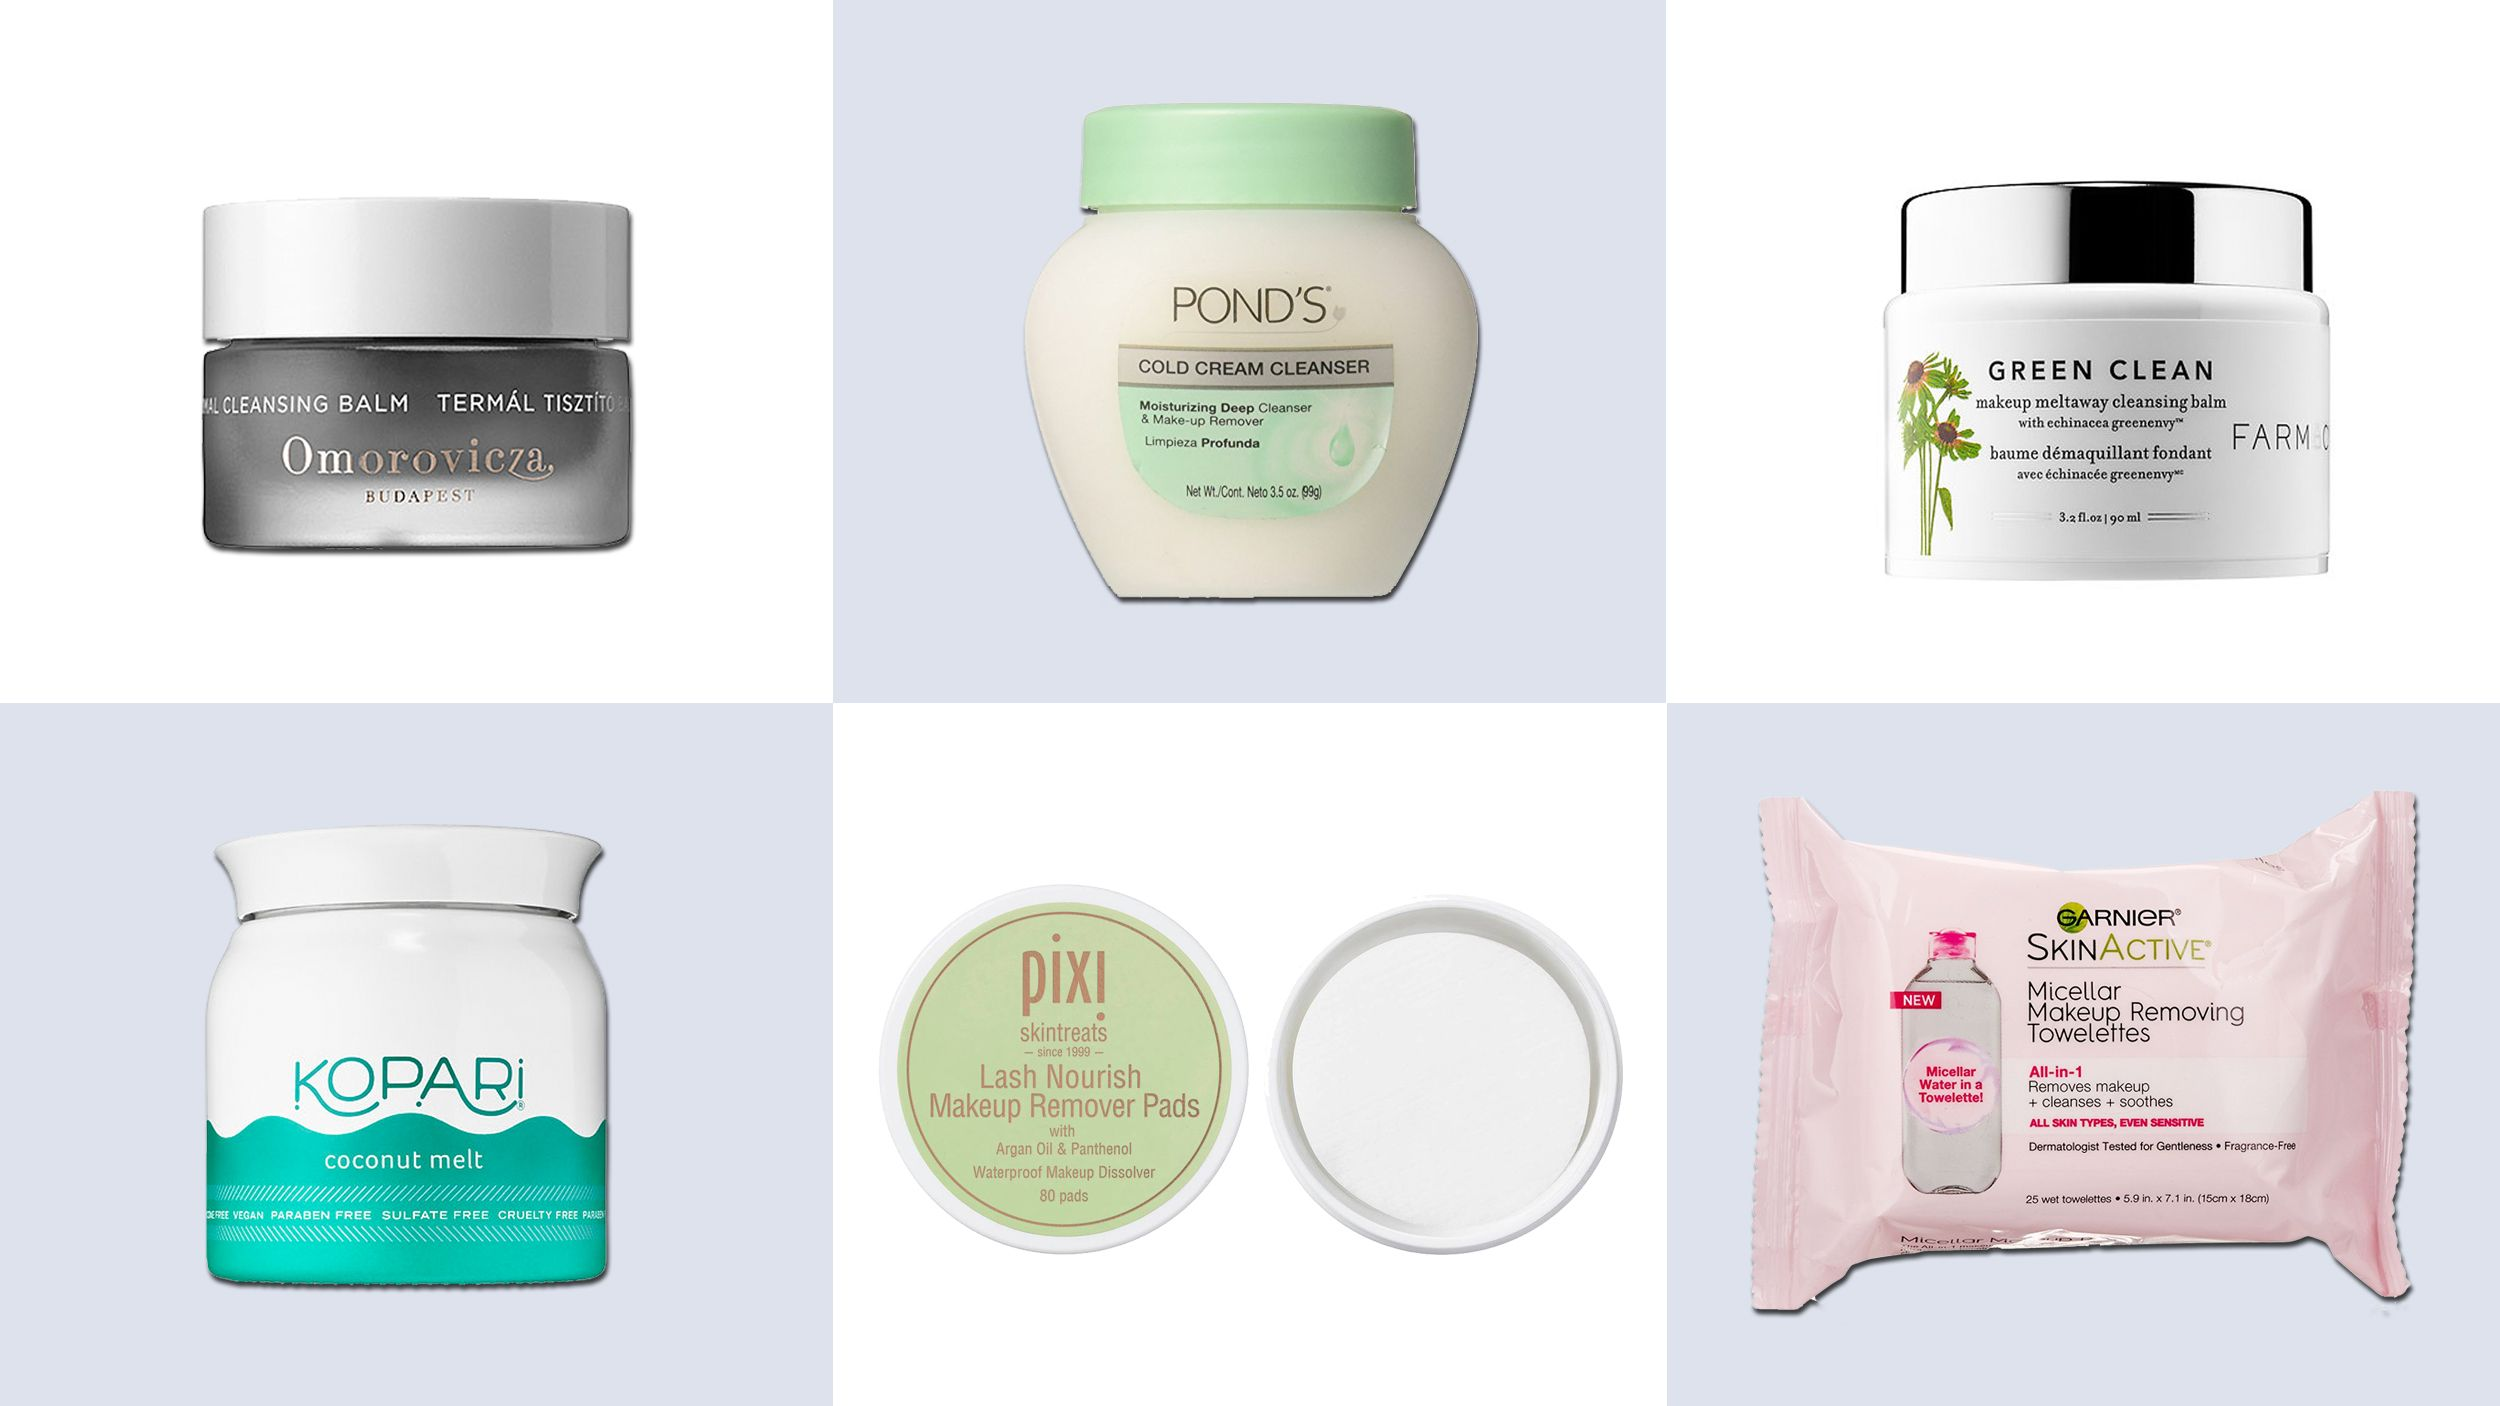 10 makeup removers that will help improve your complexion